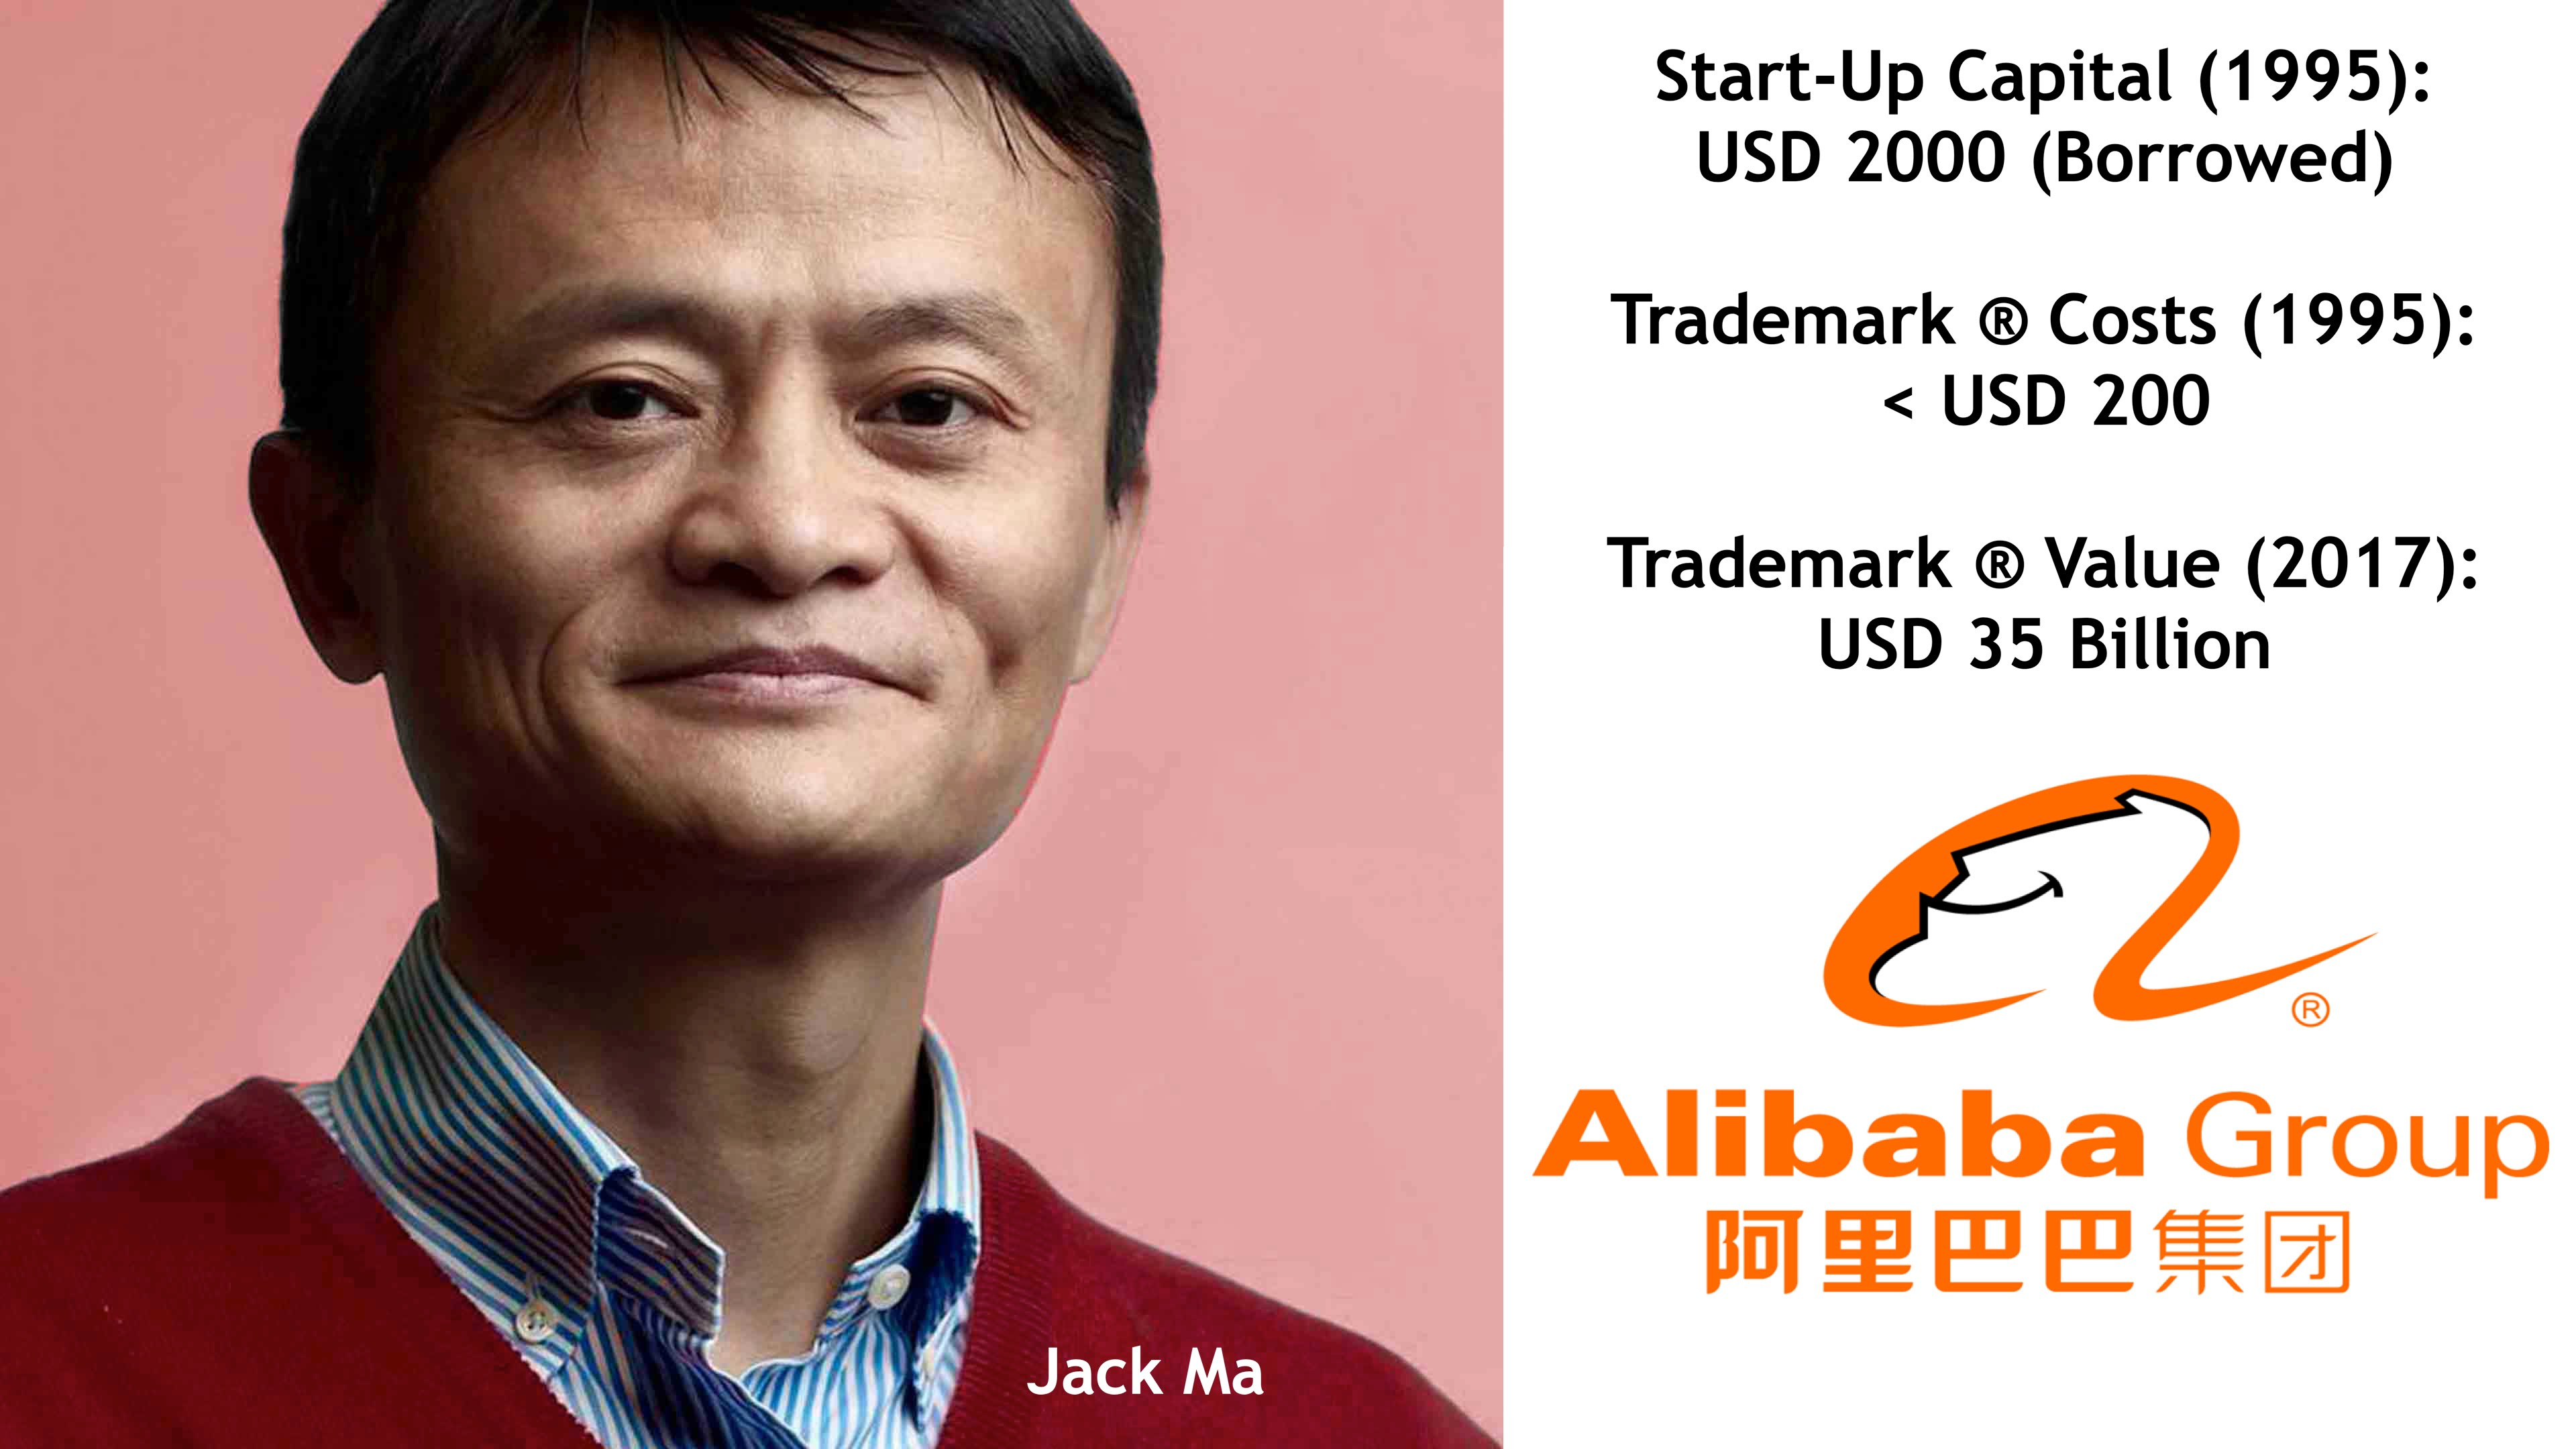 Jack Ma Alibaba Trademark Value